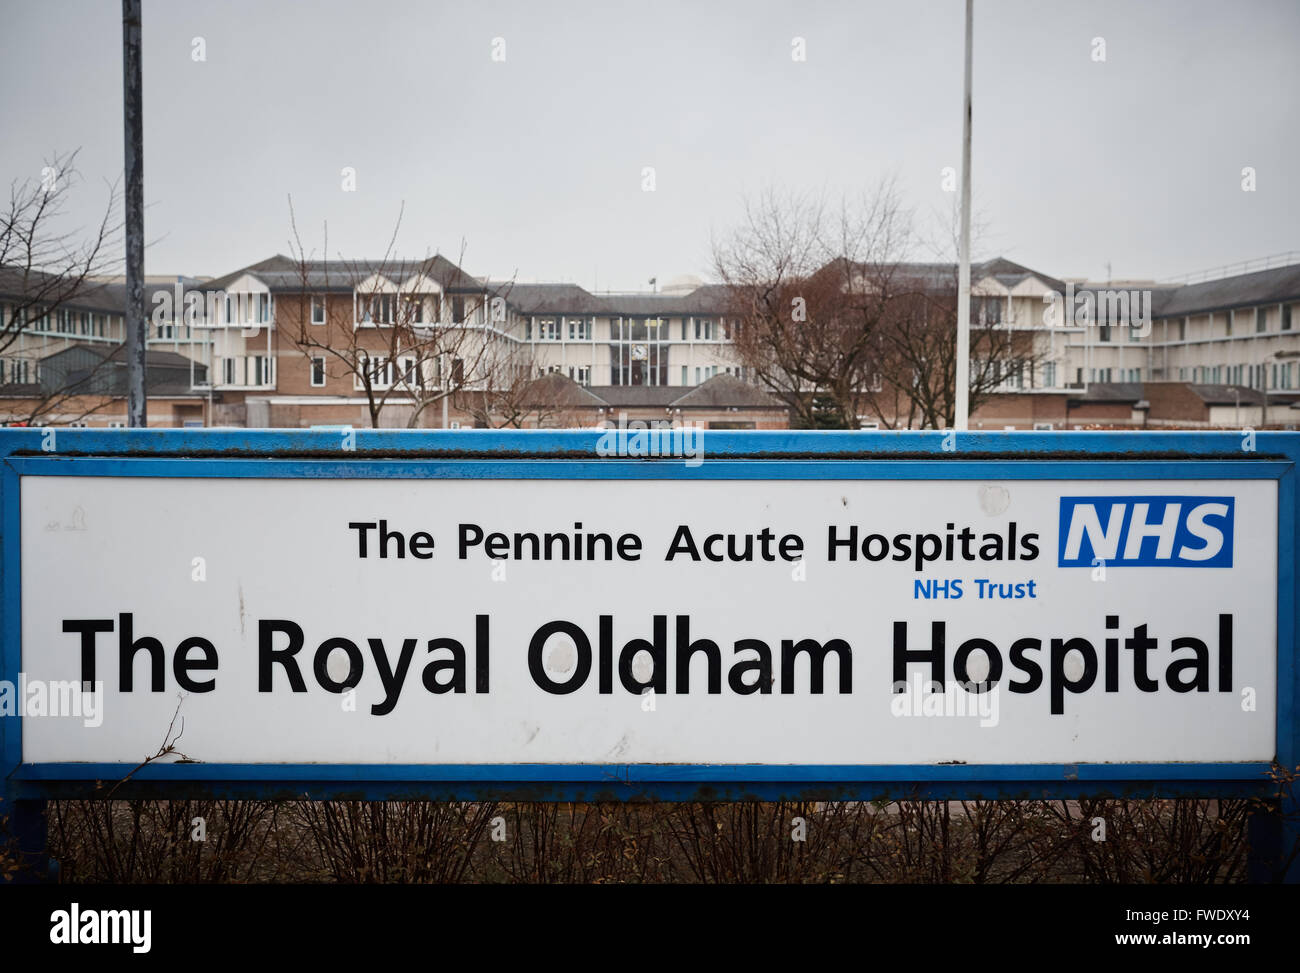 Oldham Royal Pennine Acute Hospitals NHS Trust    Formerly known as Oldham and District General Hospital Coldhurst - Stock Image